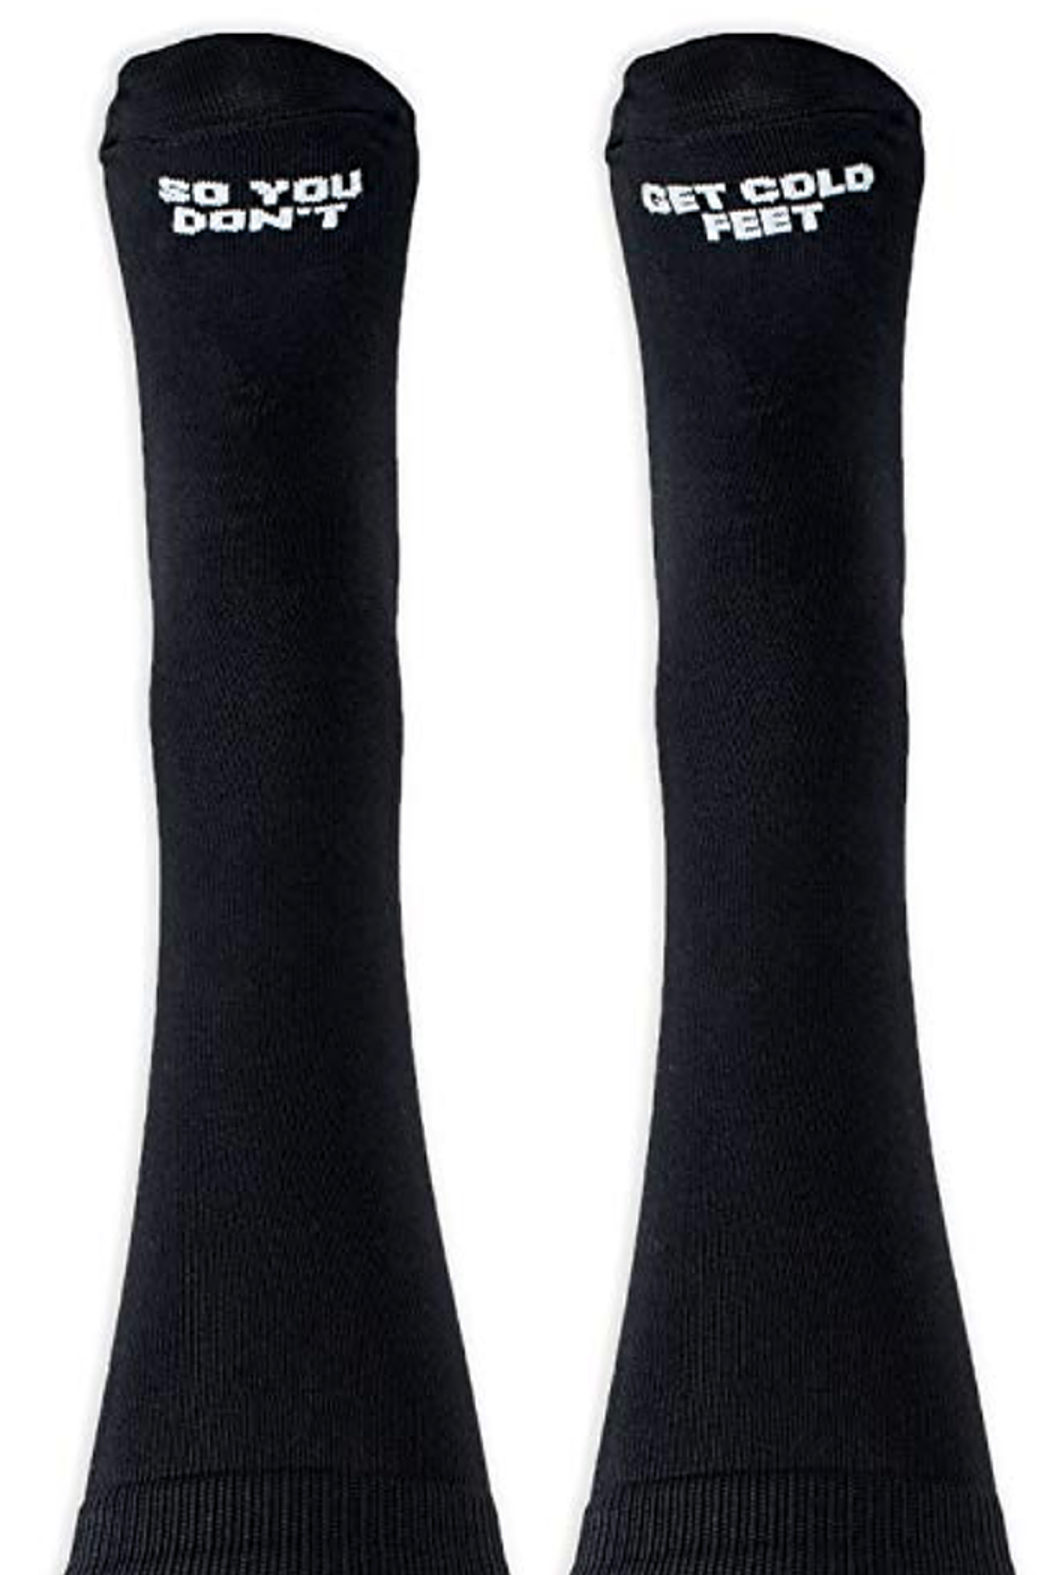 The Birds Nest MALE DRESS SOCKS DON'T GET GOLD FEET - Main Image